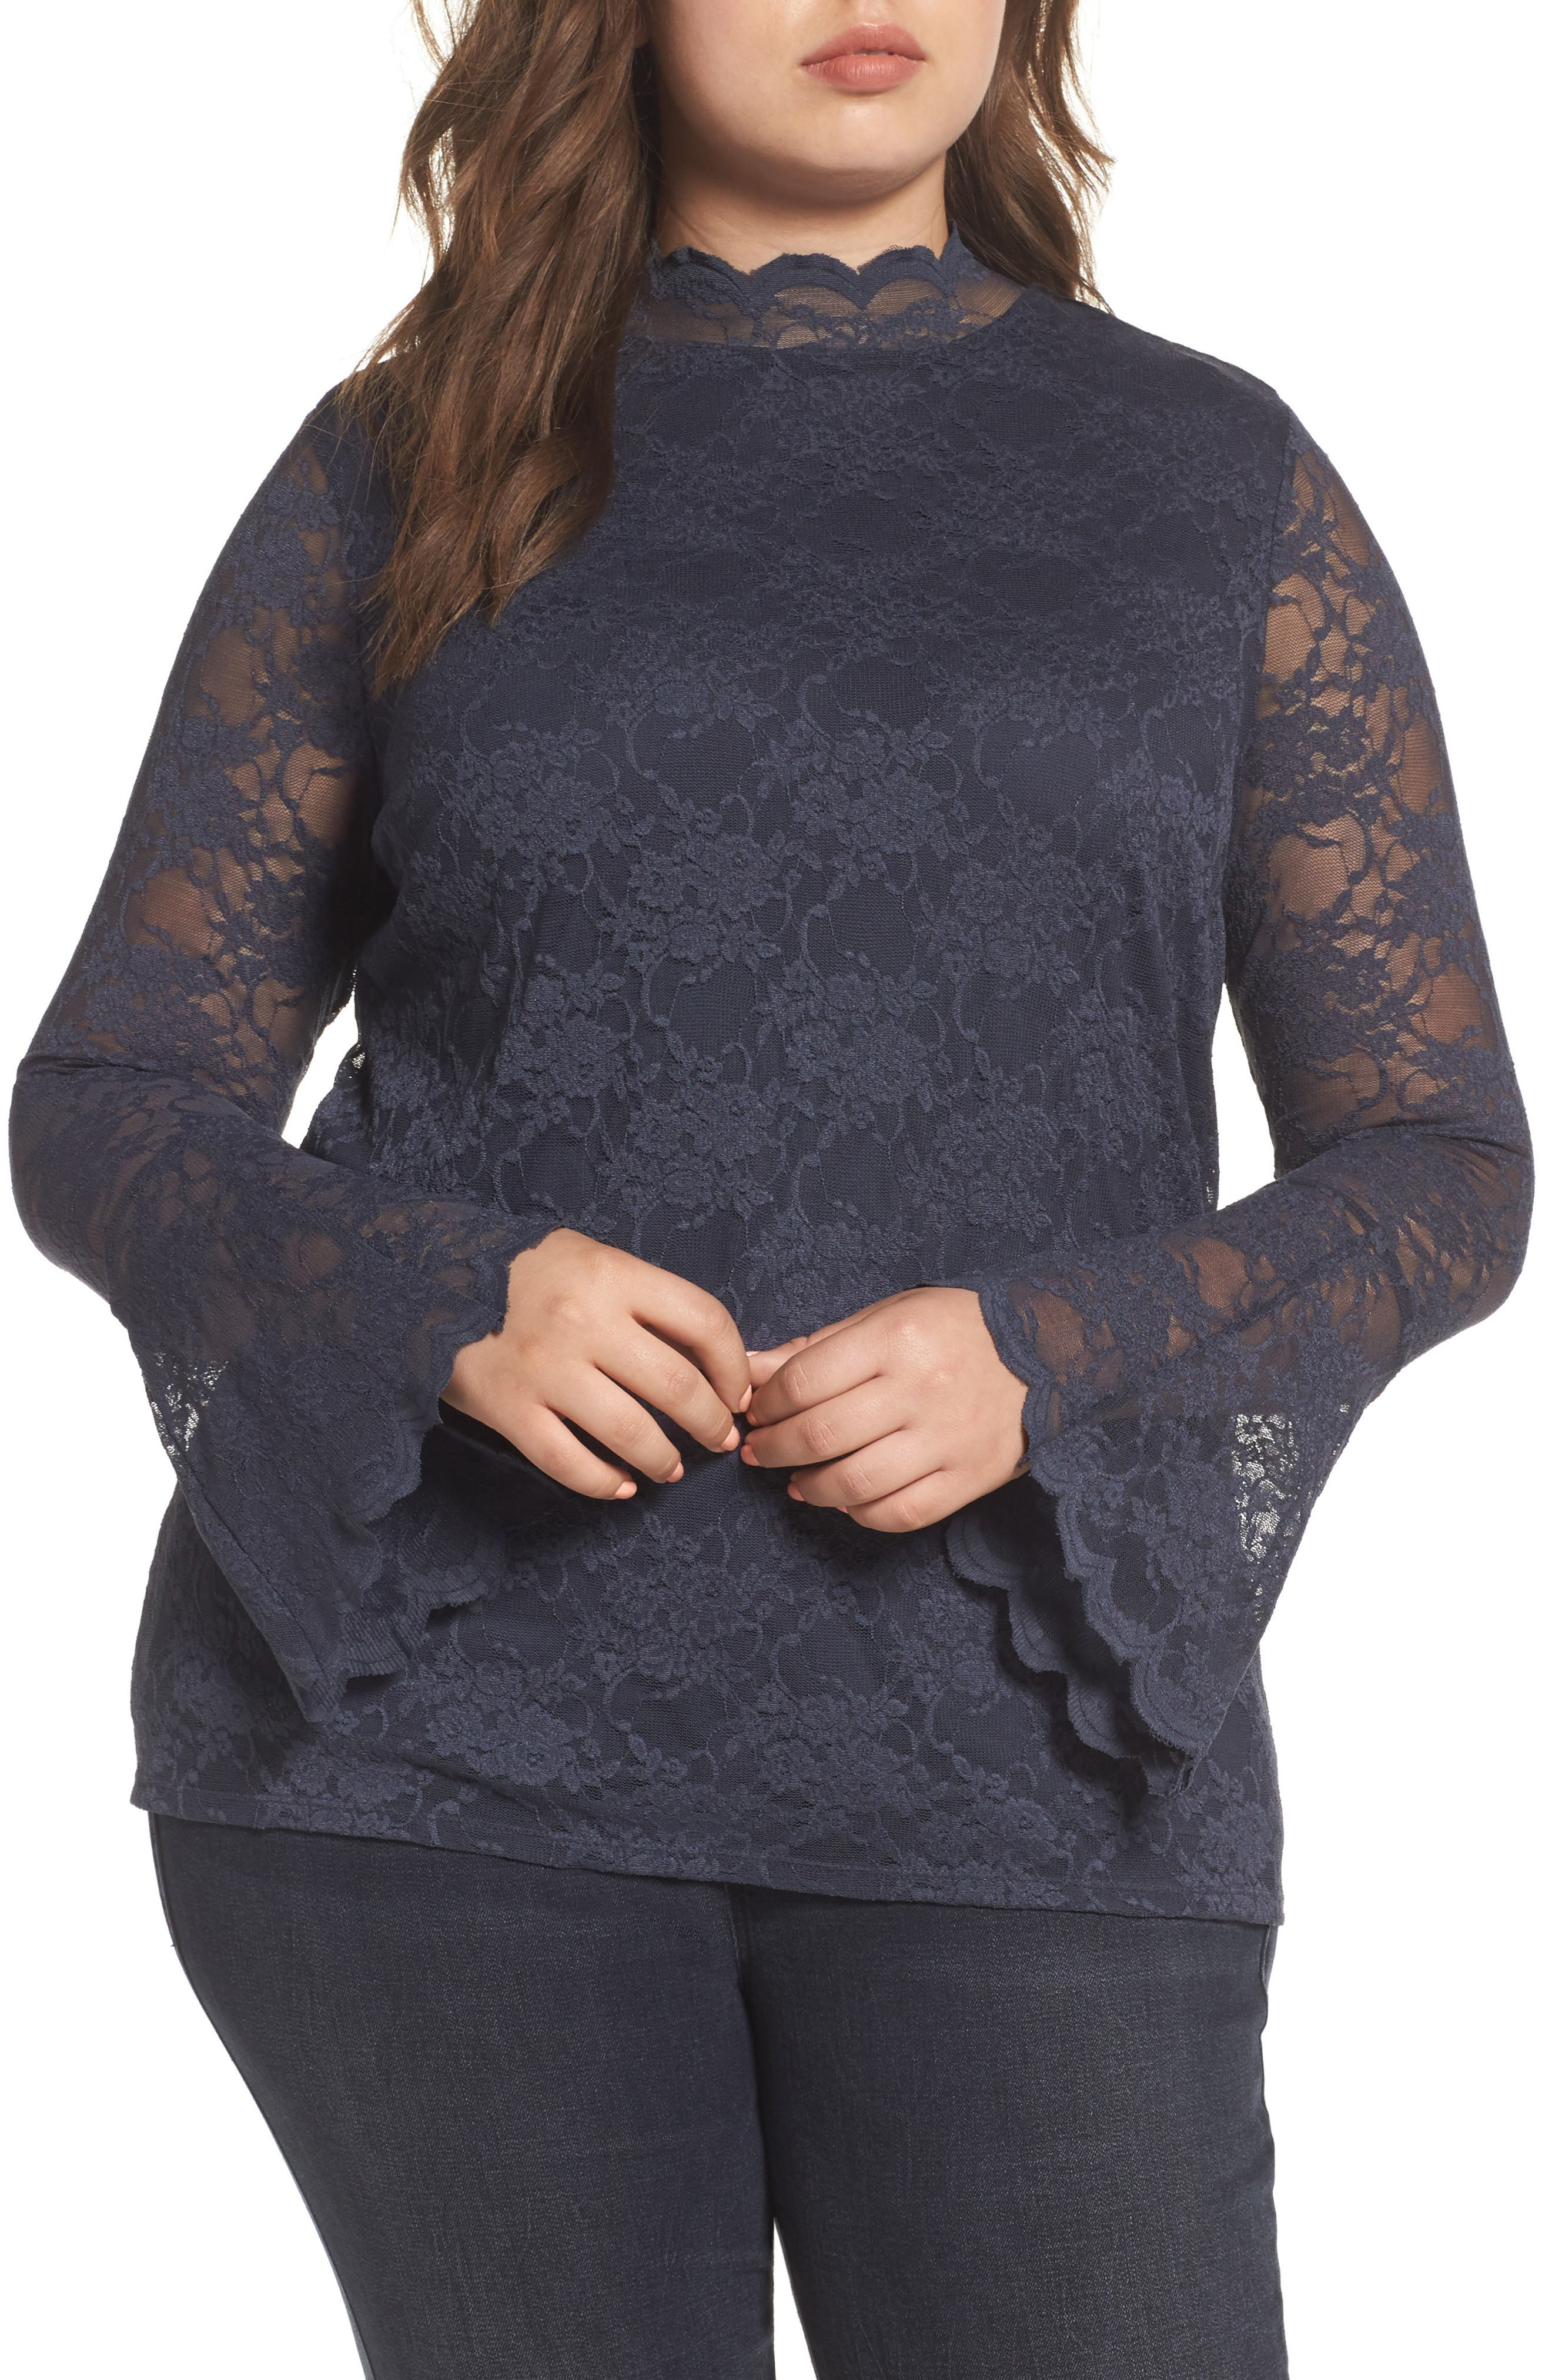 Alternate Image 1 Selected - Vince Camuto Bell Sleeve Lace Top (Plus Size)